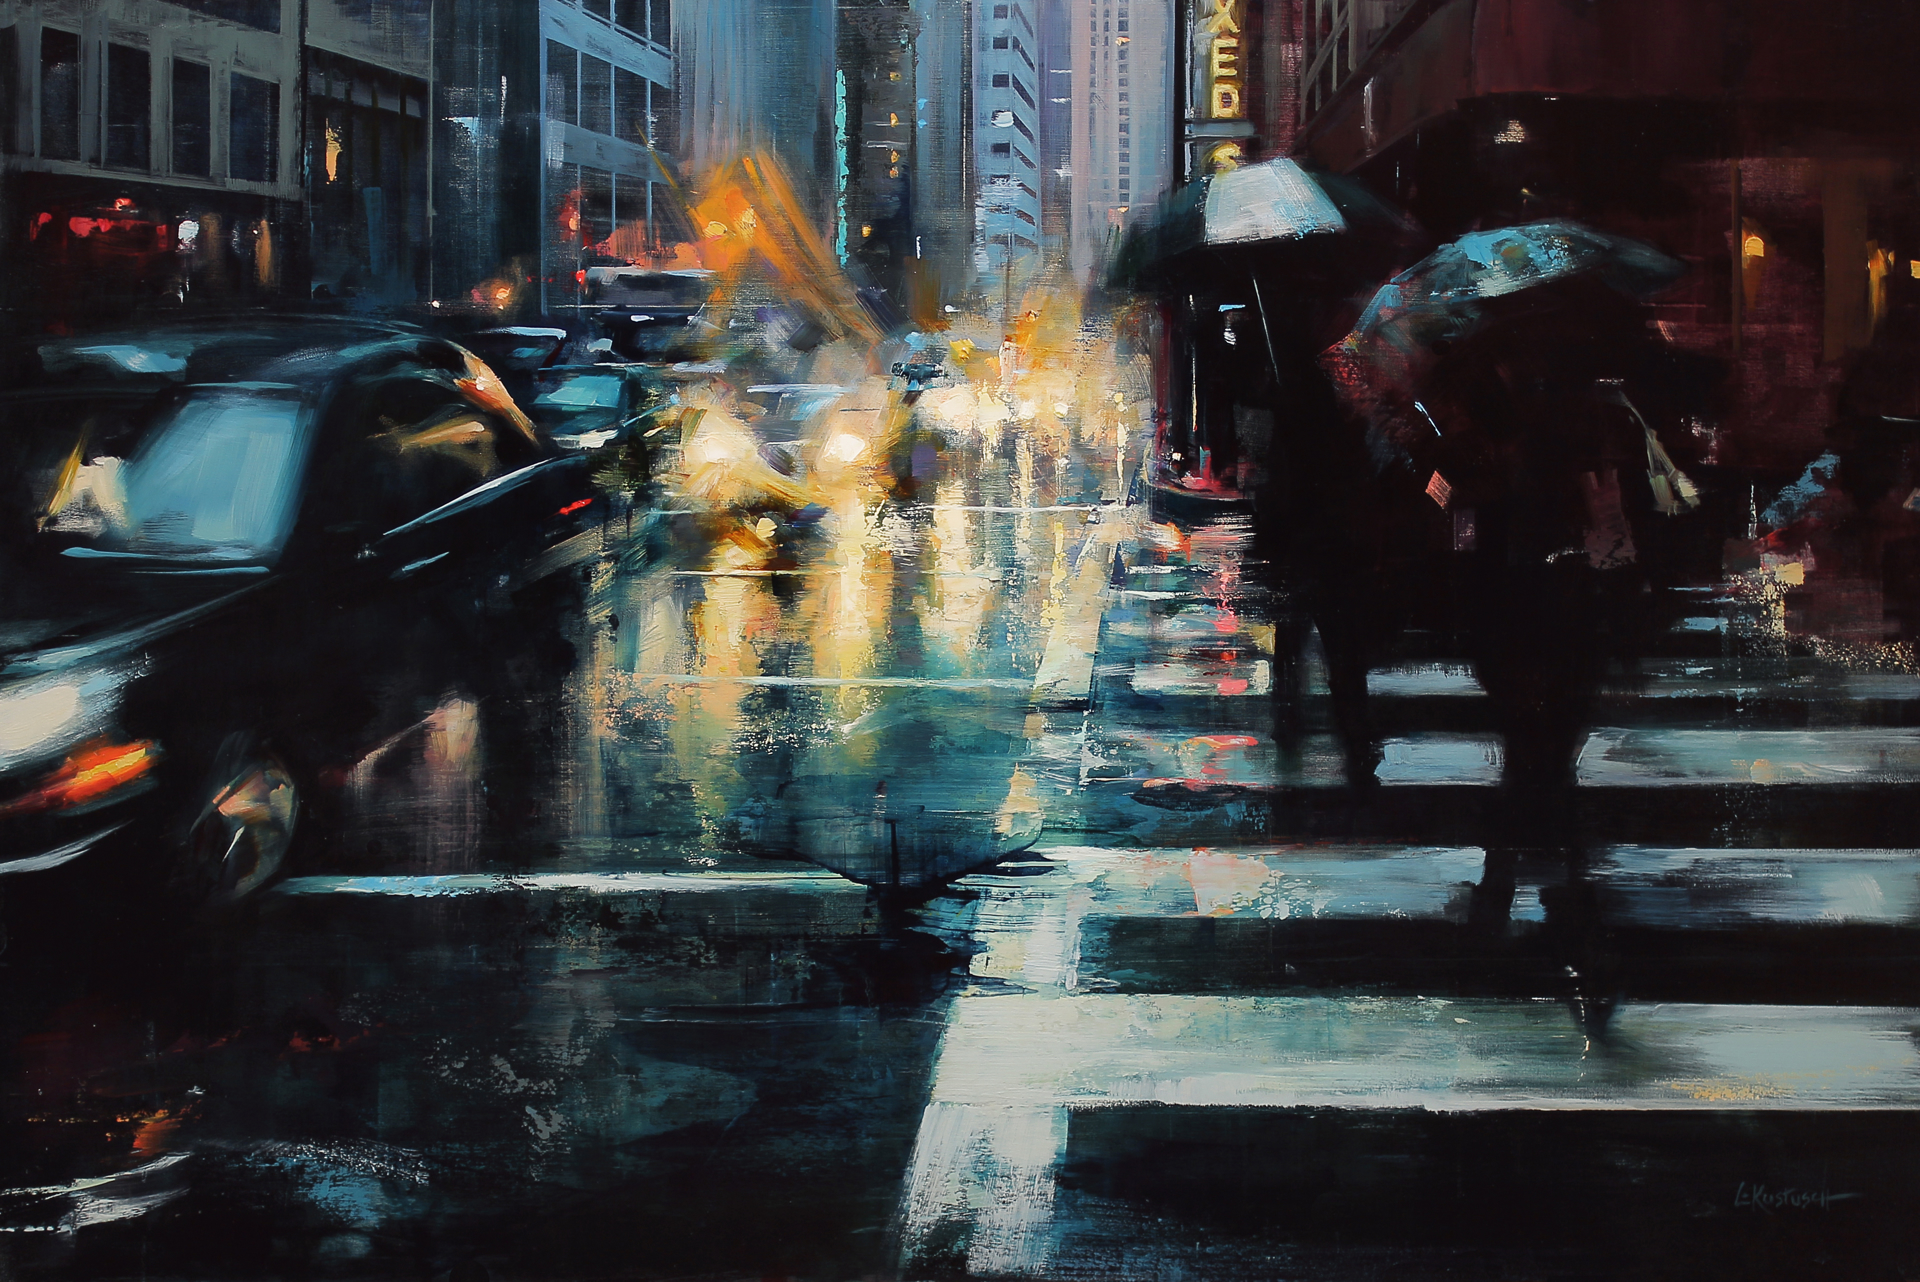 But the Rain Continued by Lindsey Kustusch